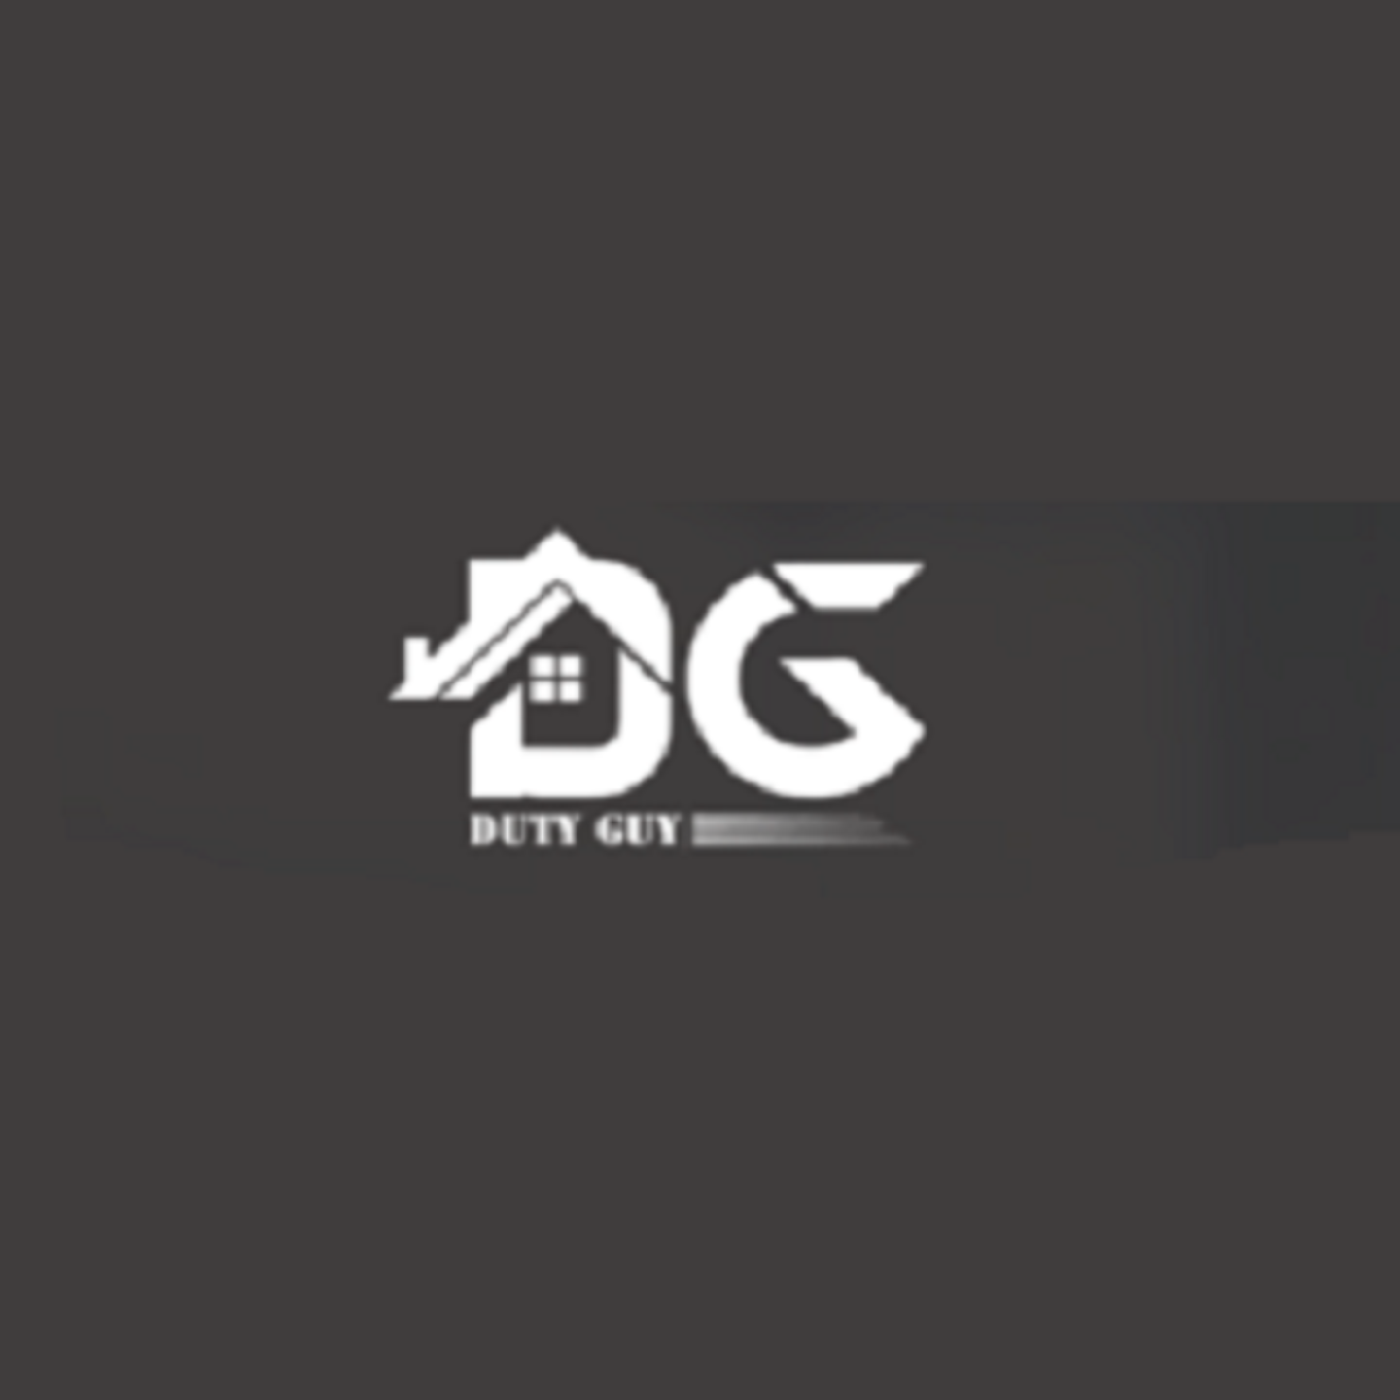 Duty Guy Private Limited